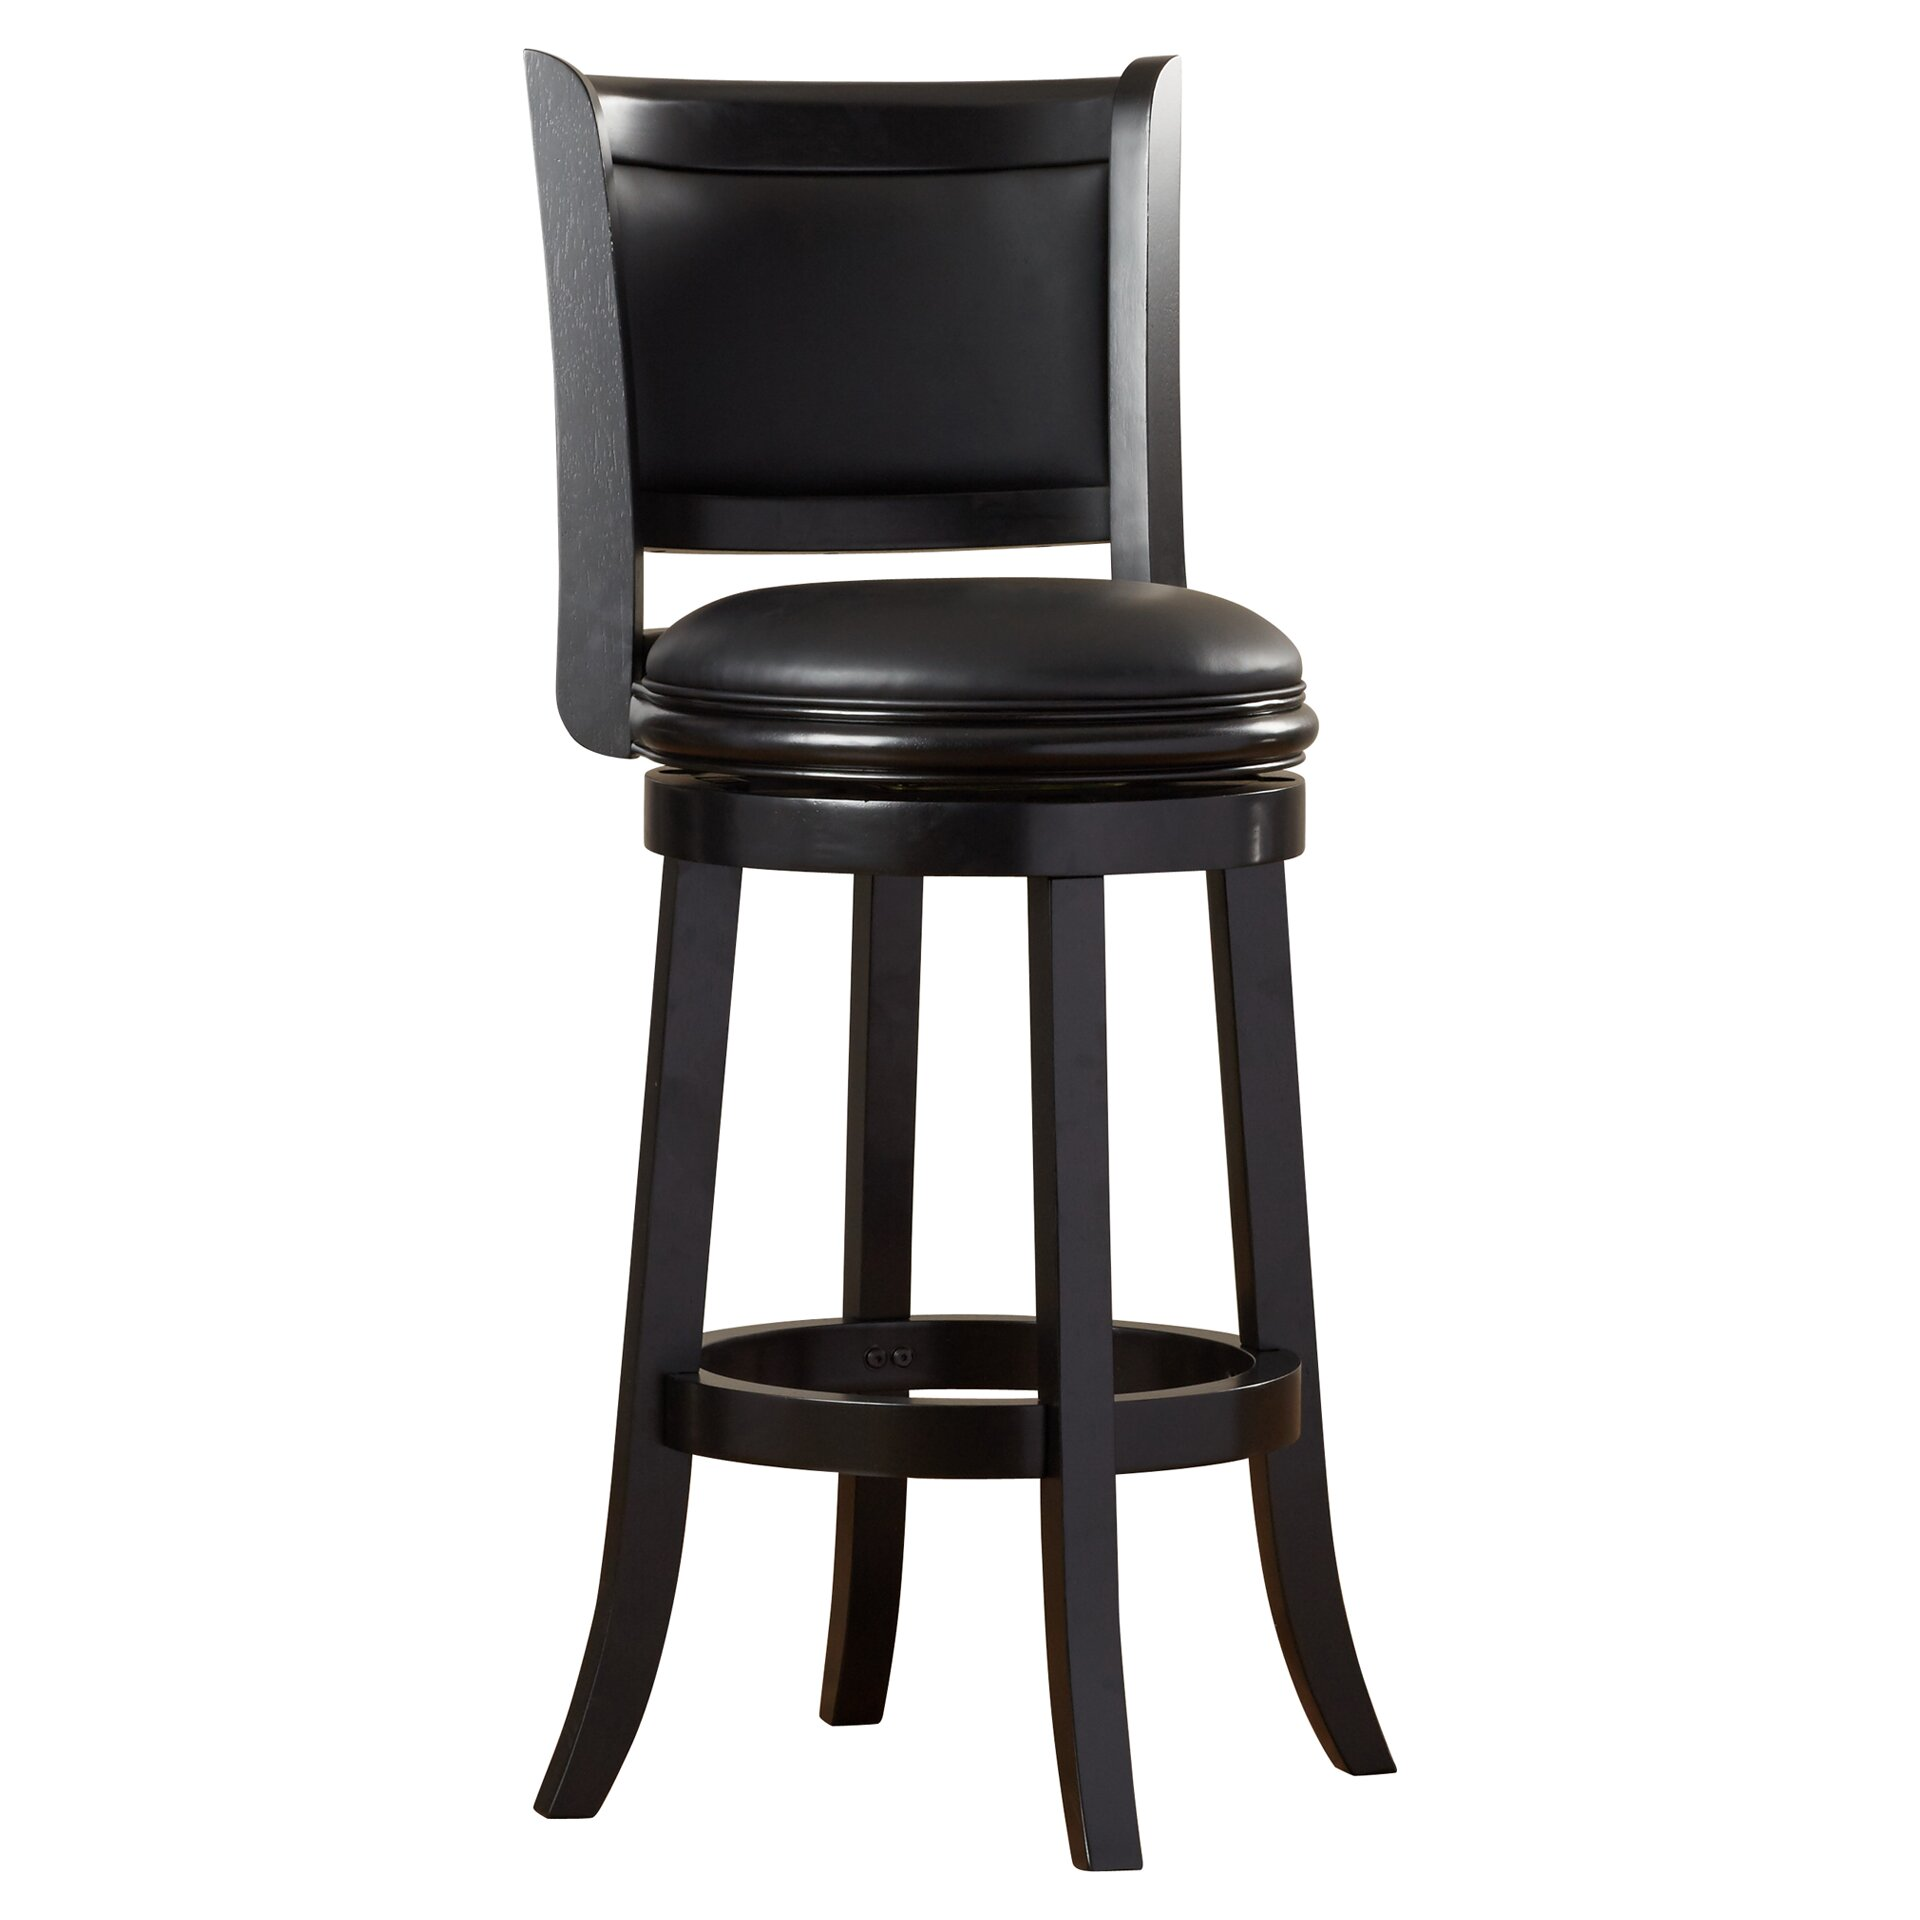 Darby home co orangeville 29 swivel bar stool reviews for Bar stools clearance